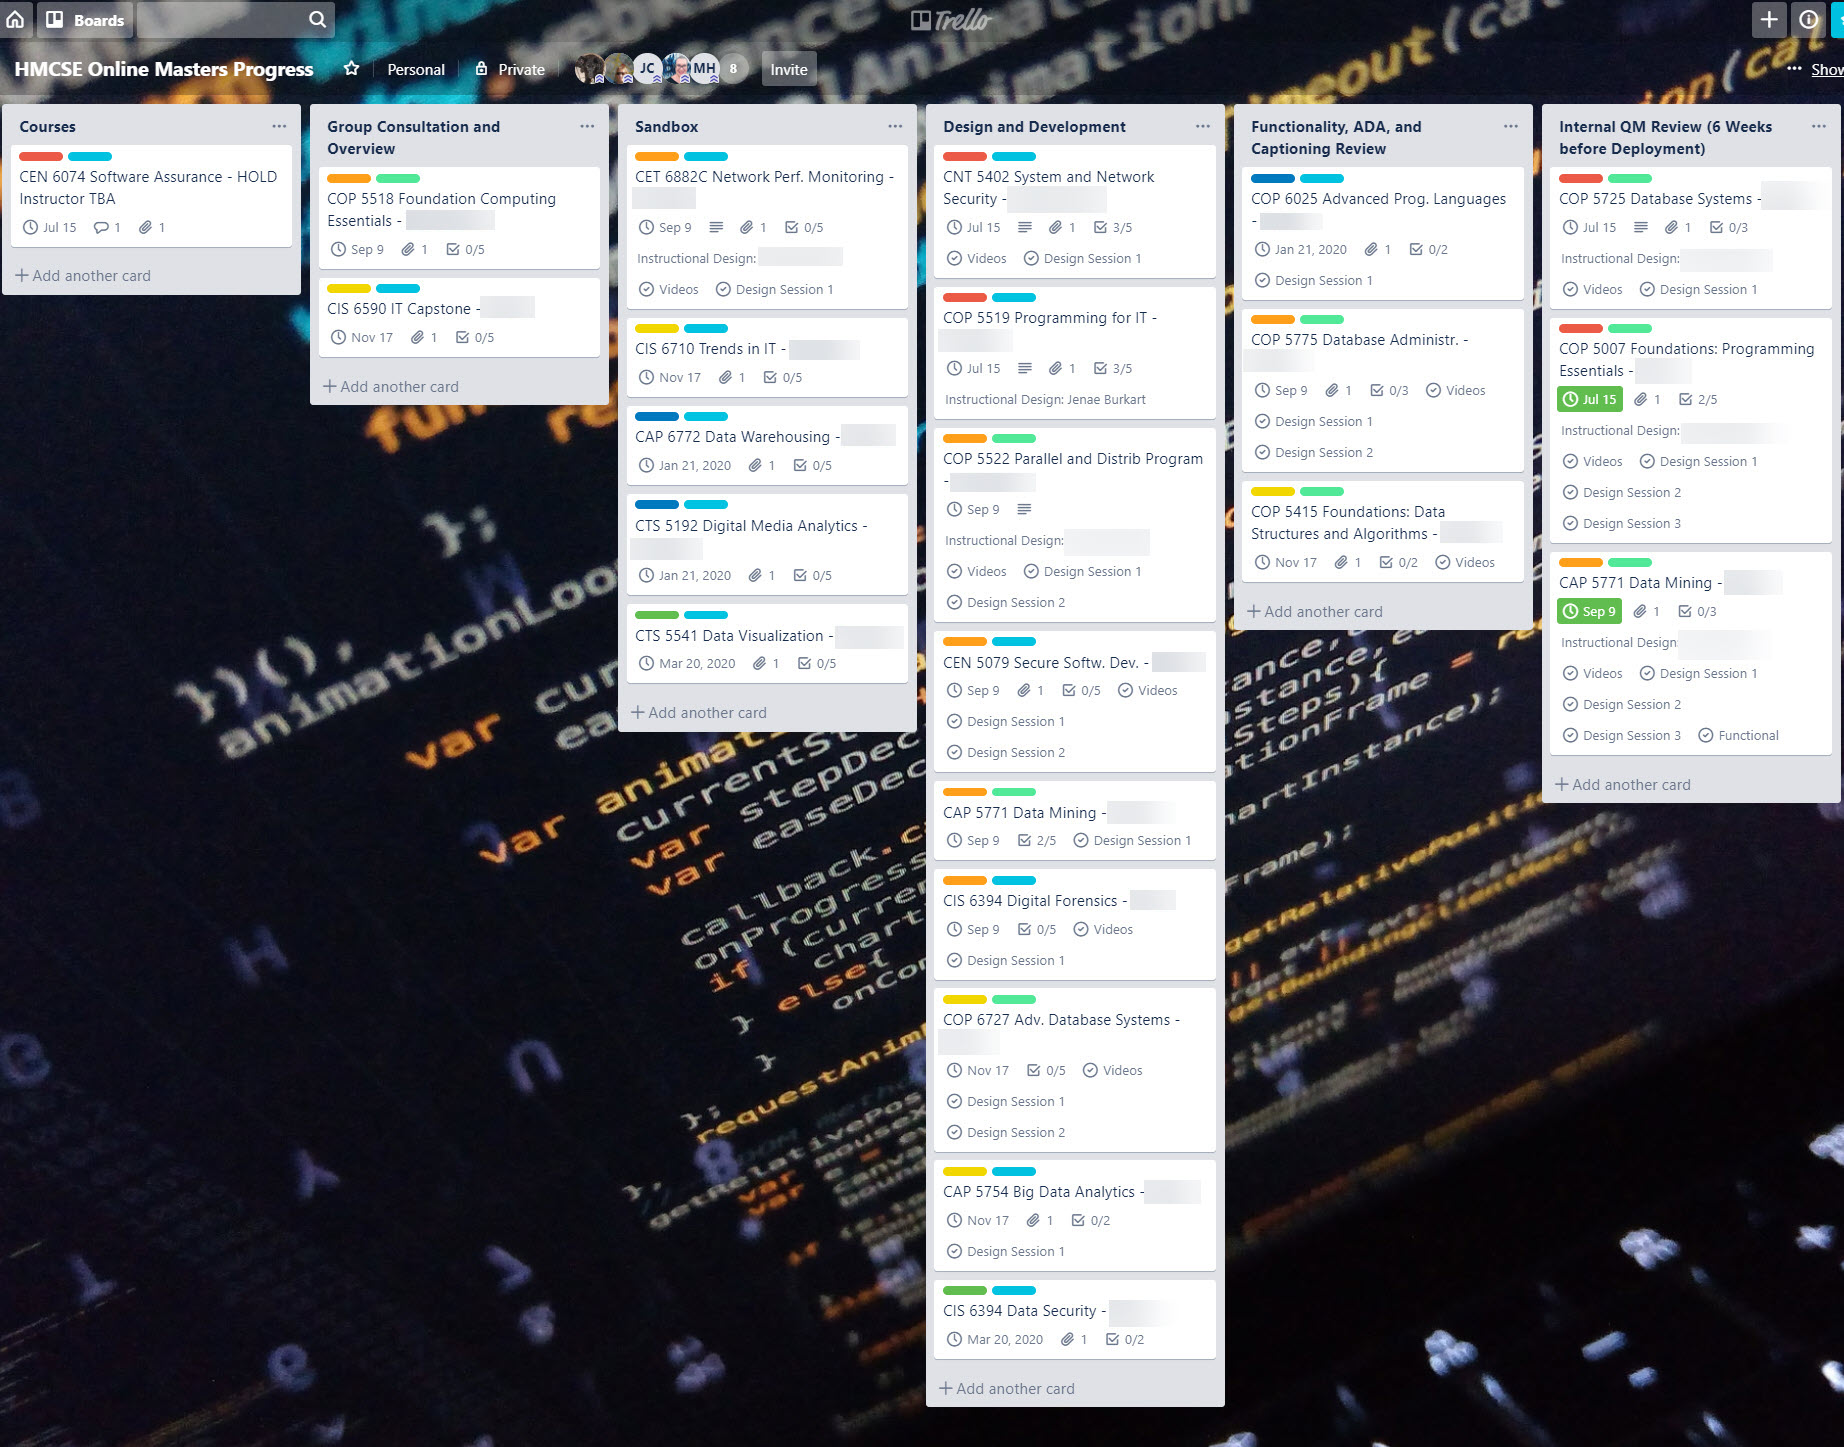 Image of the UWF Trello board for project management